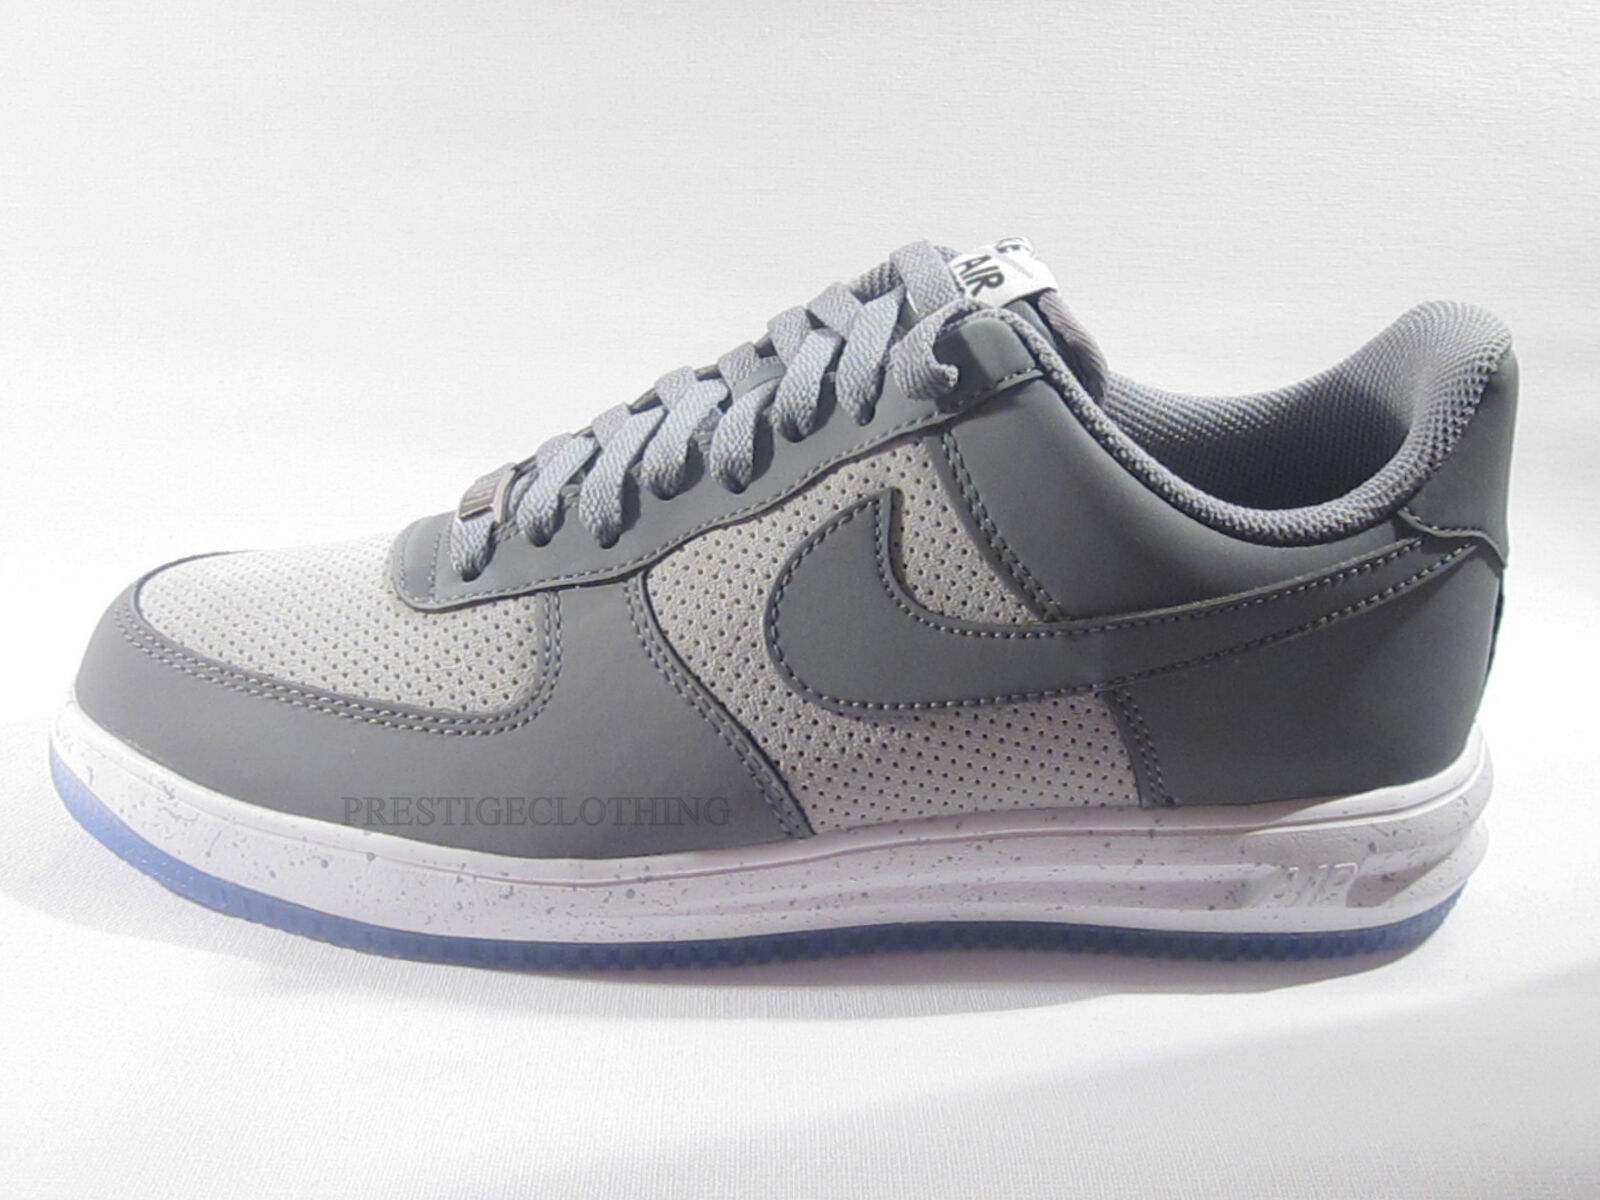 ORIGINAL NIKE LUNAR AIR FORCE 1 '14 GREY WHITE TRAINERS 654256006 EX DISPLAY